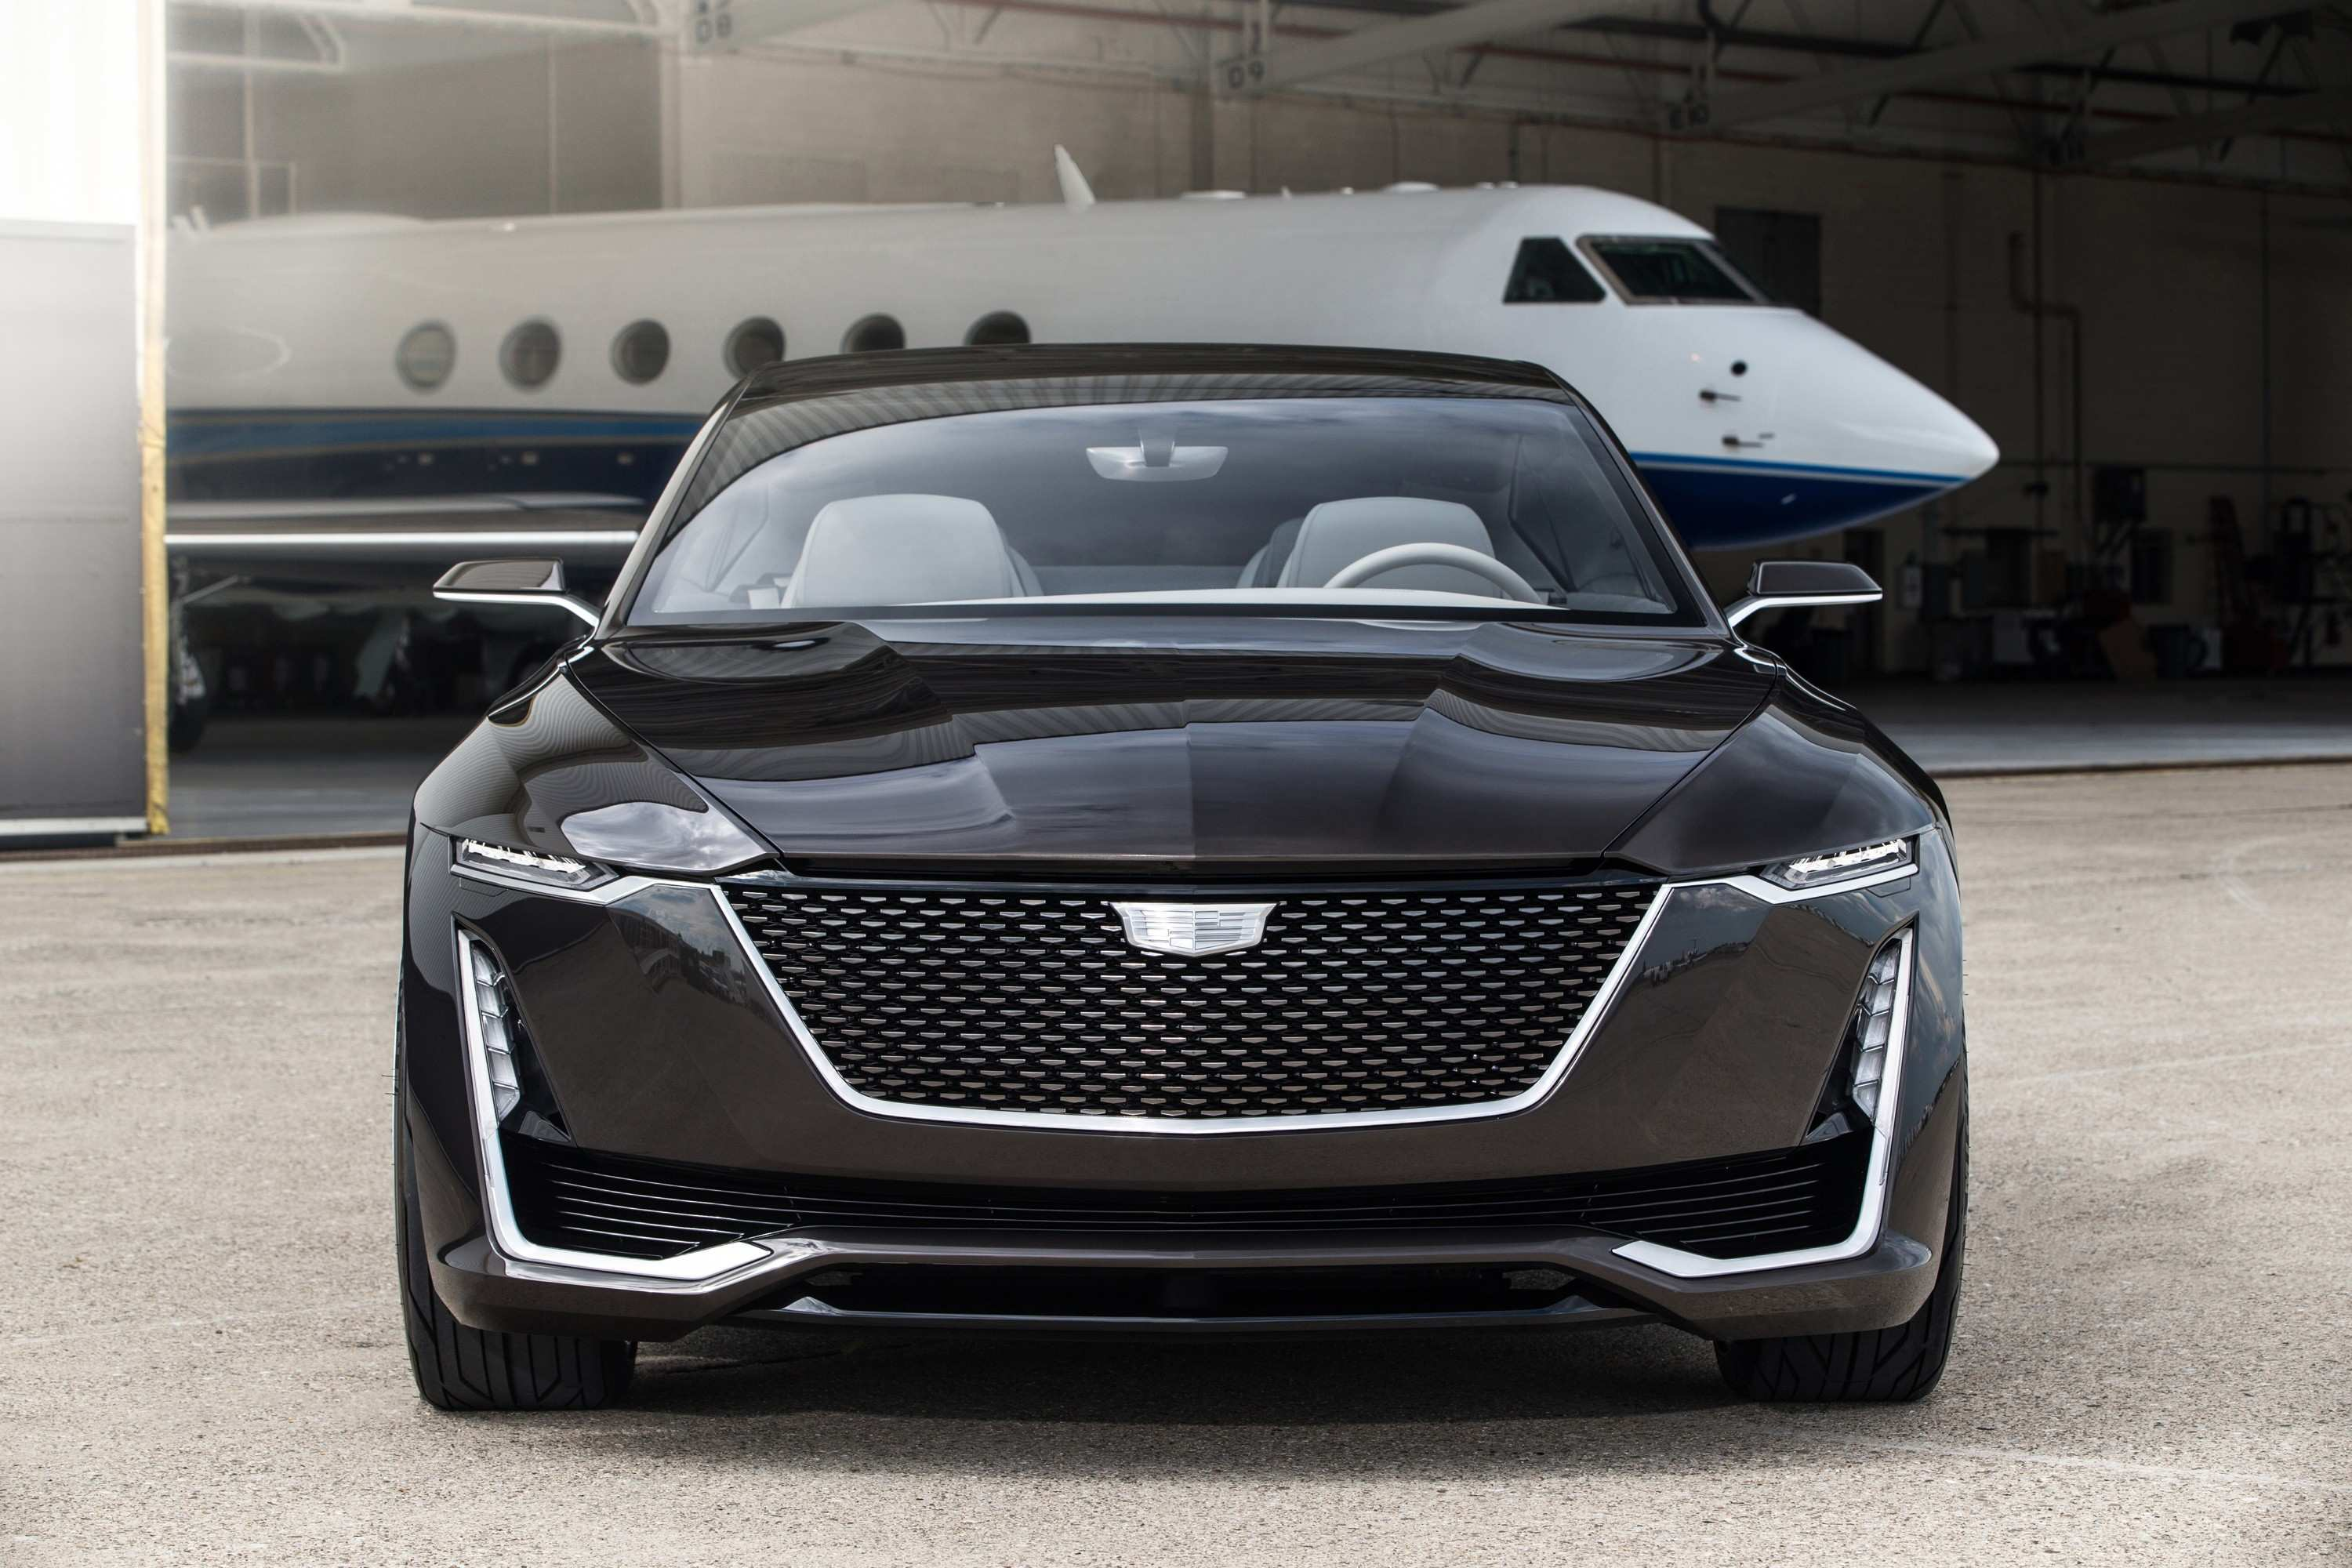 32 New Cadillac V Series 2020 Redesign